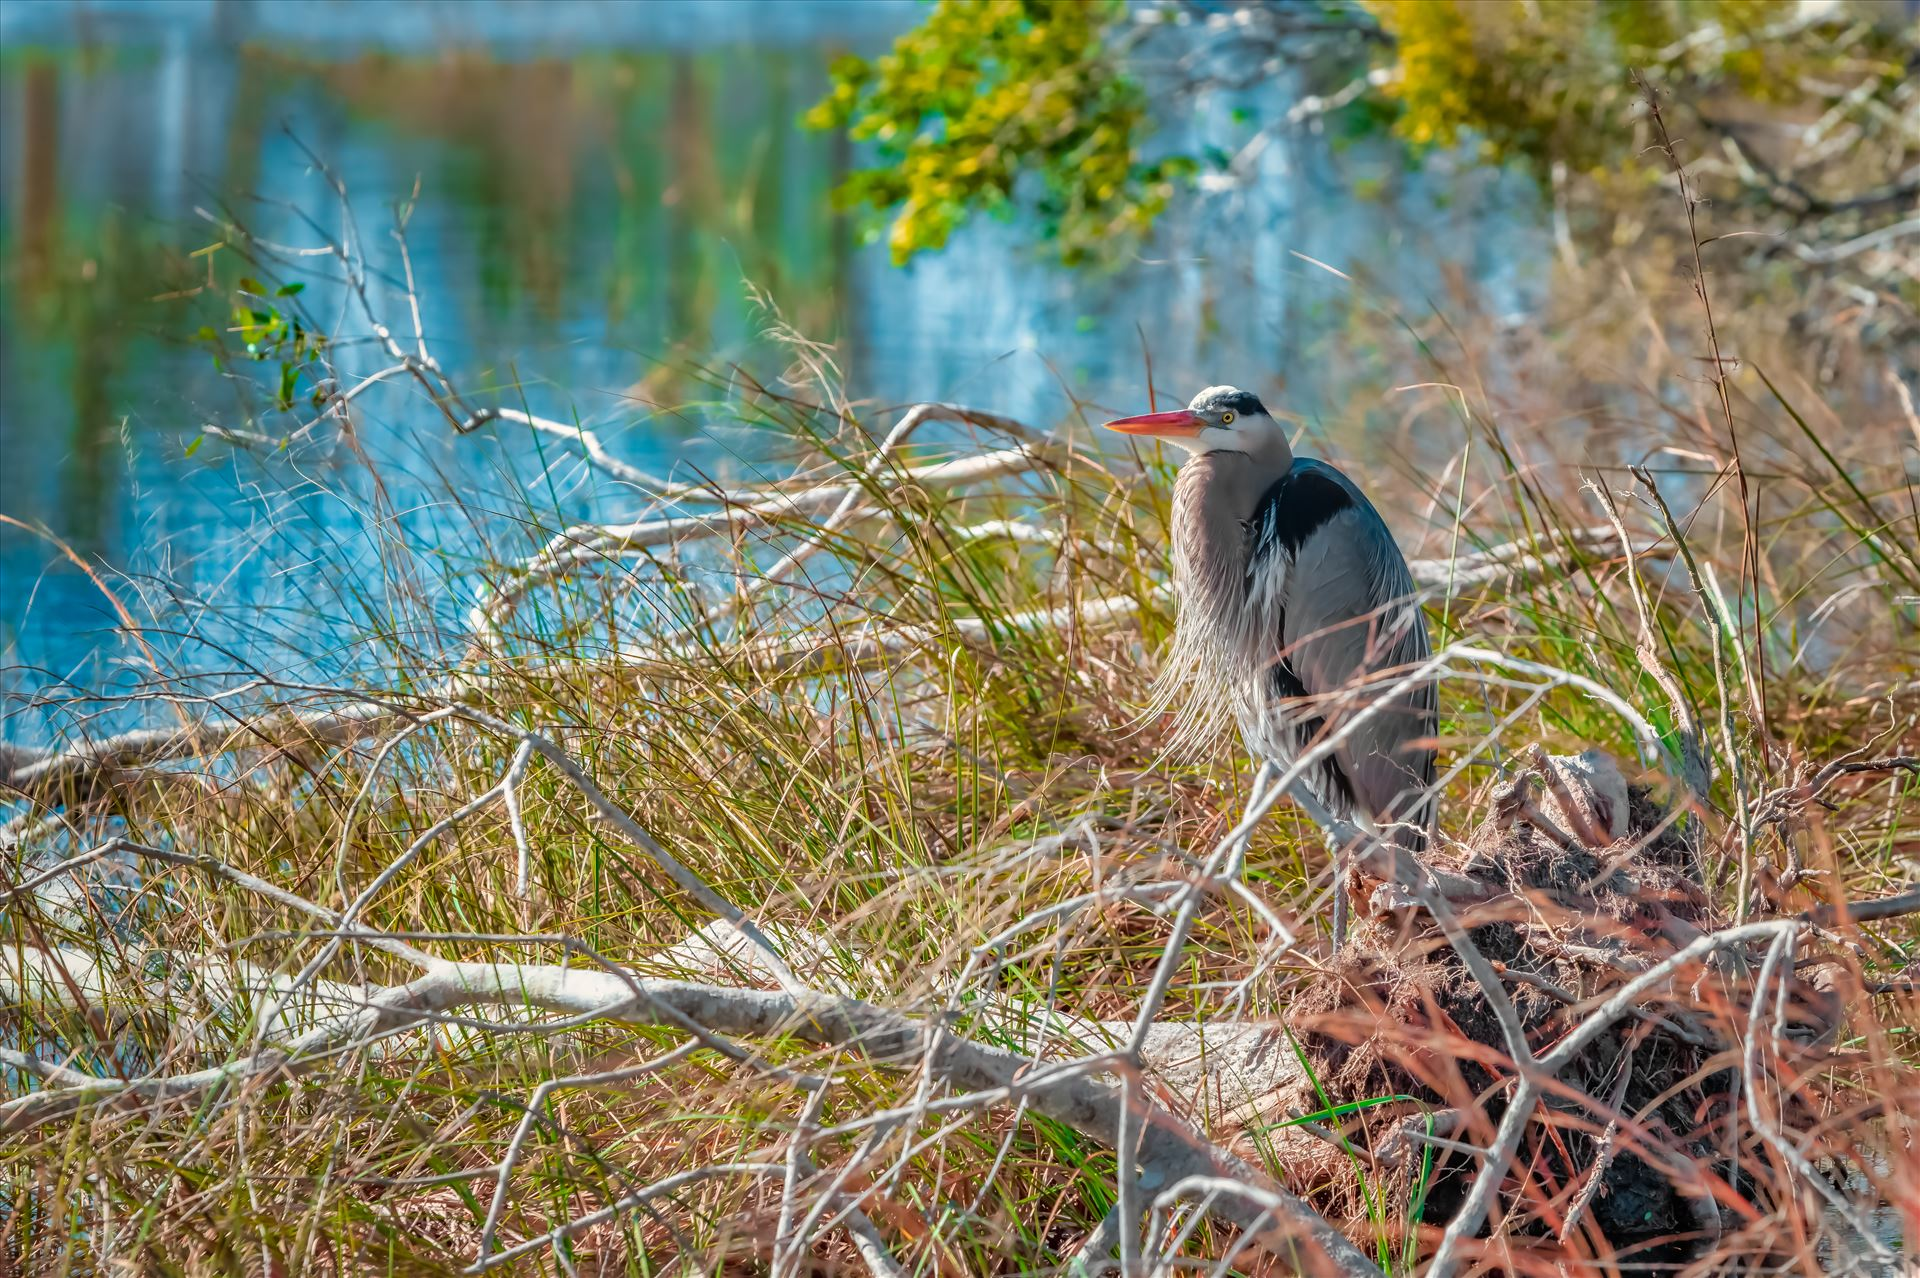 Great Blue Heron Great Blue Heron at Buttonbush Marsh, St. Andrews State Park. Panama City, Florida by Terry Kelly Photography